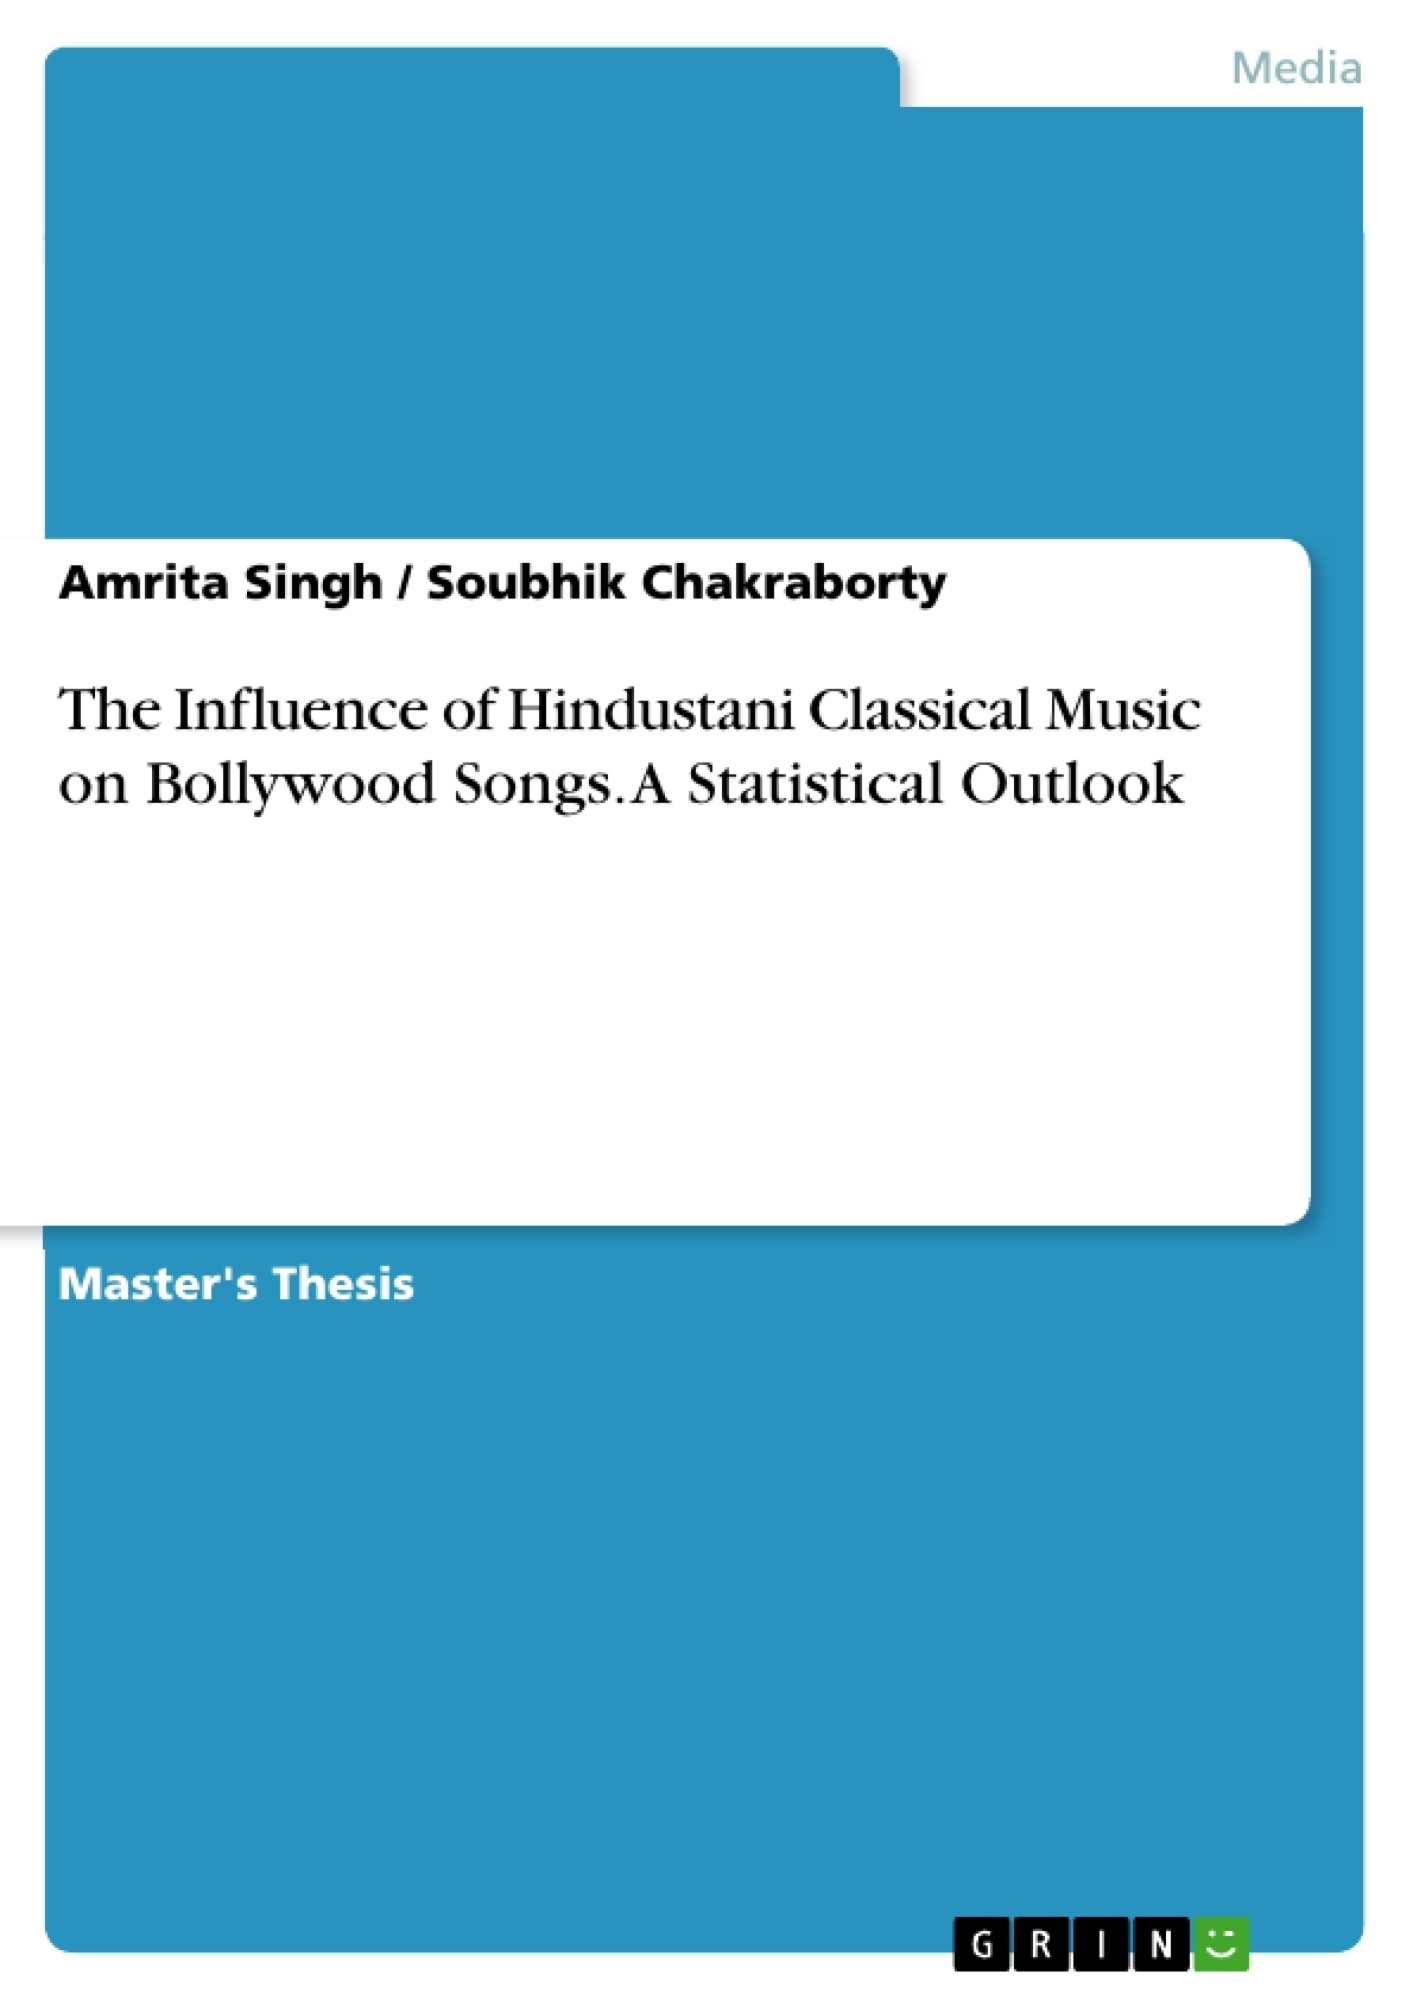 GRIN - The Influence of Hindustani Classical Music on Bollywood Songs  A  Statistical Outlook